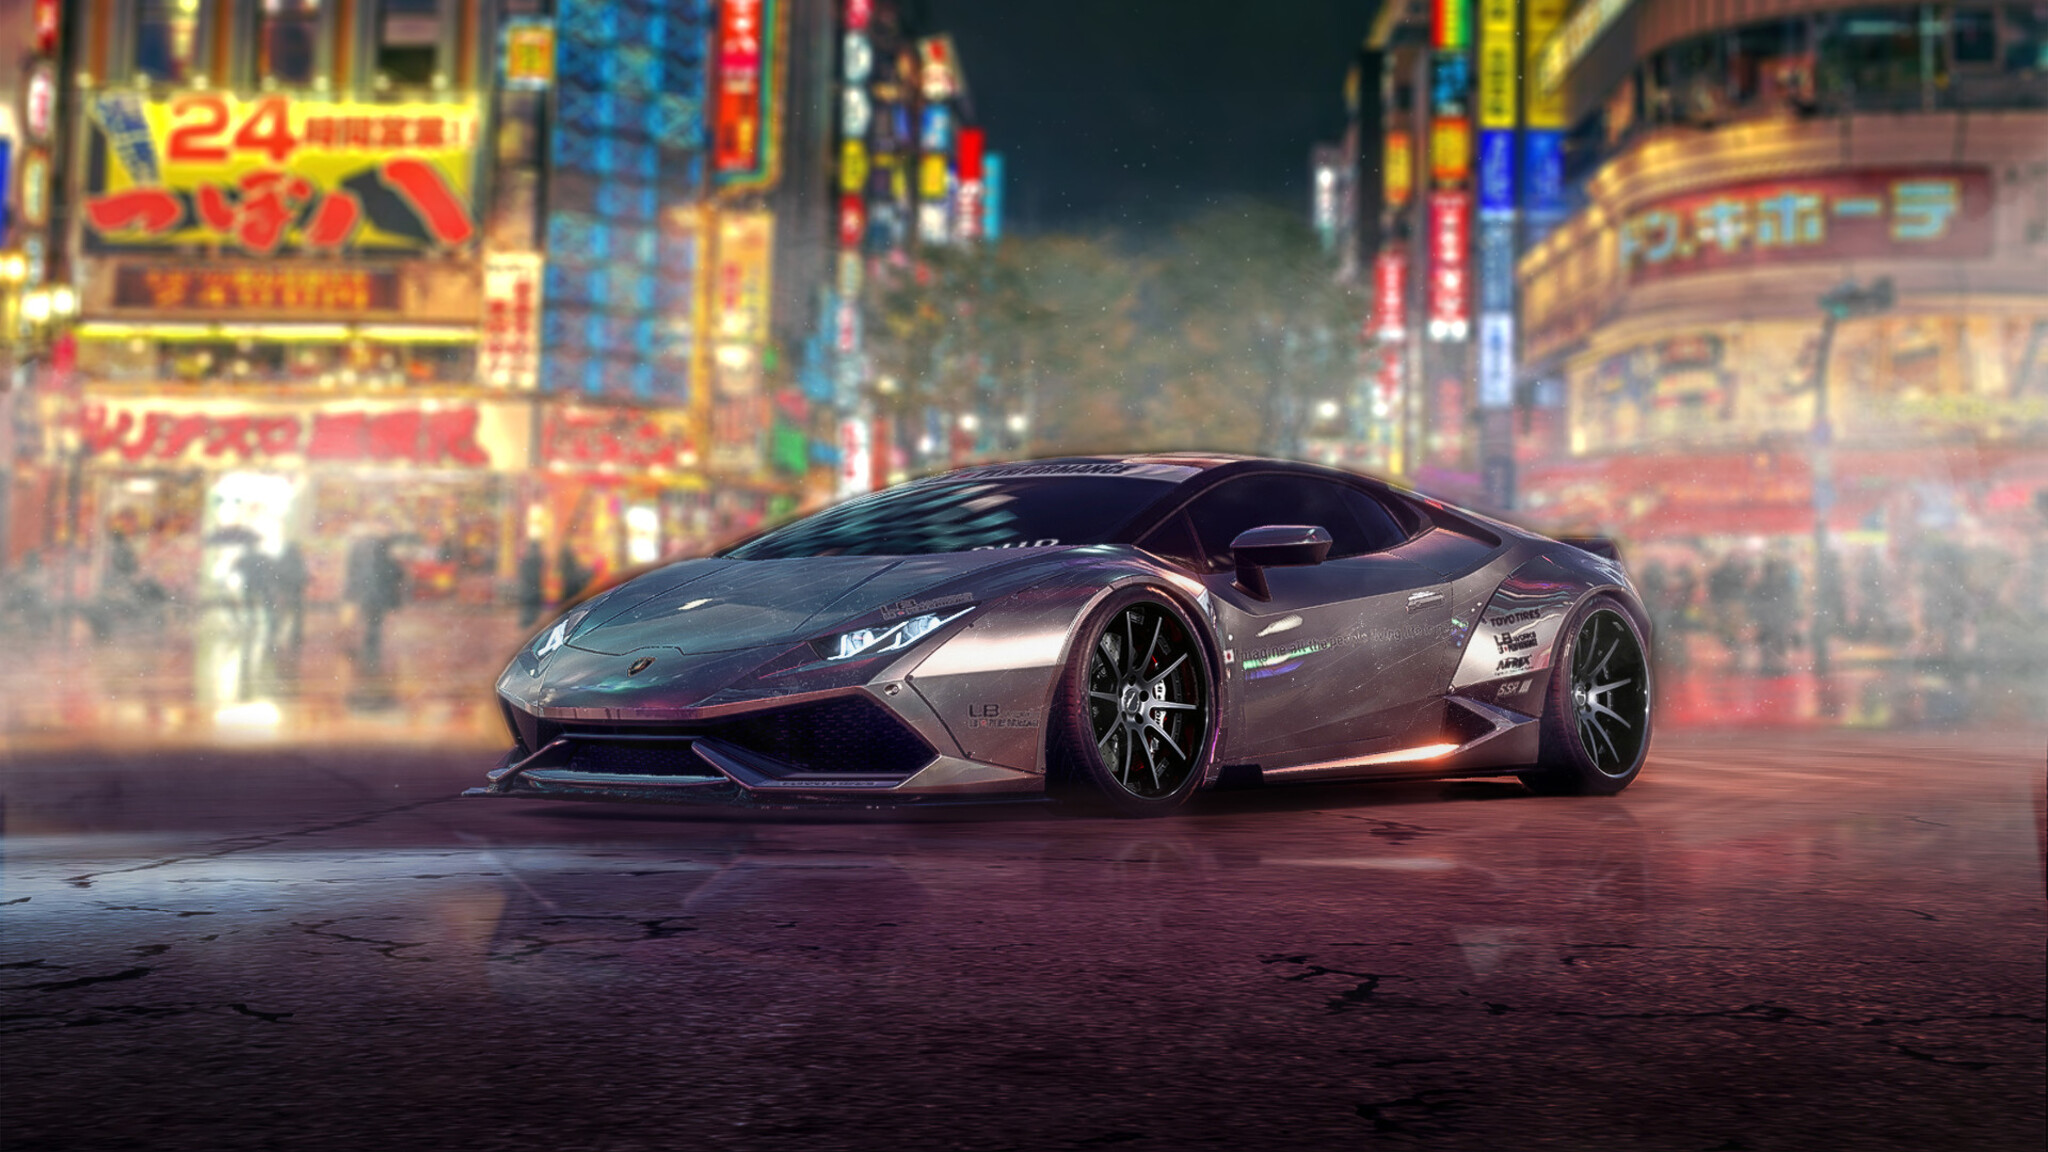 Need For Speed Payback Wallpaper: 2048x1152 NFS Payback Lamborghini 2048x1152 Resolution HD